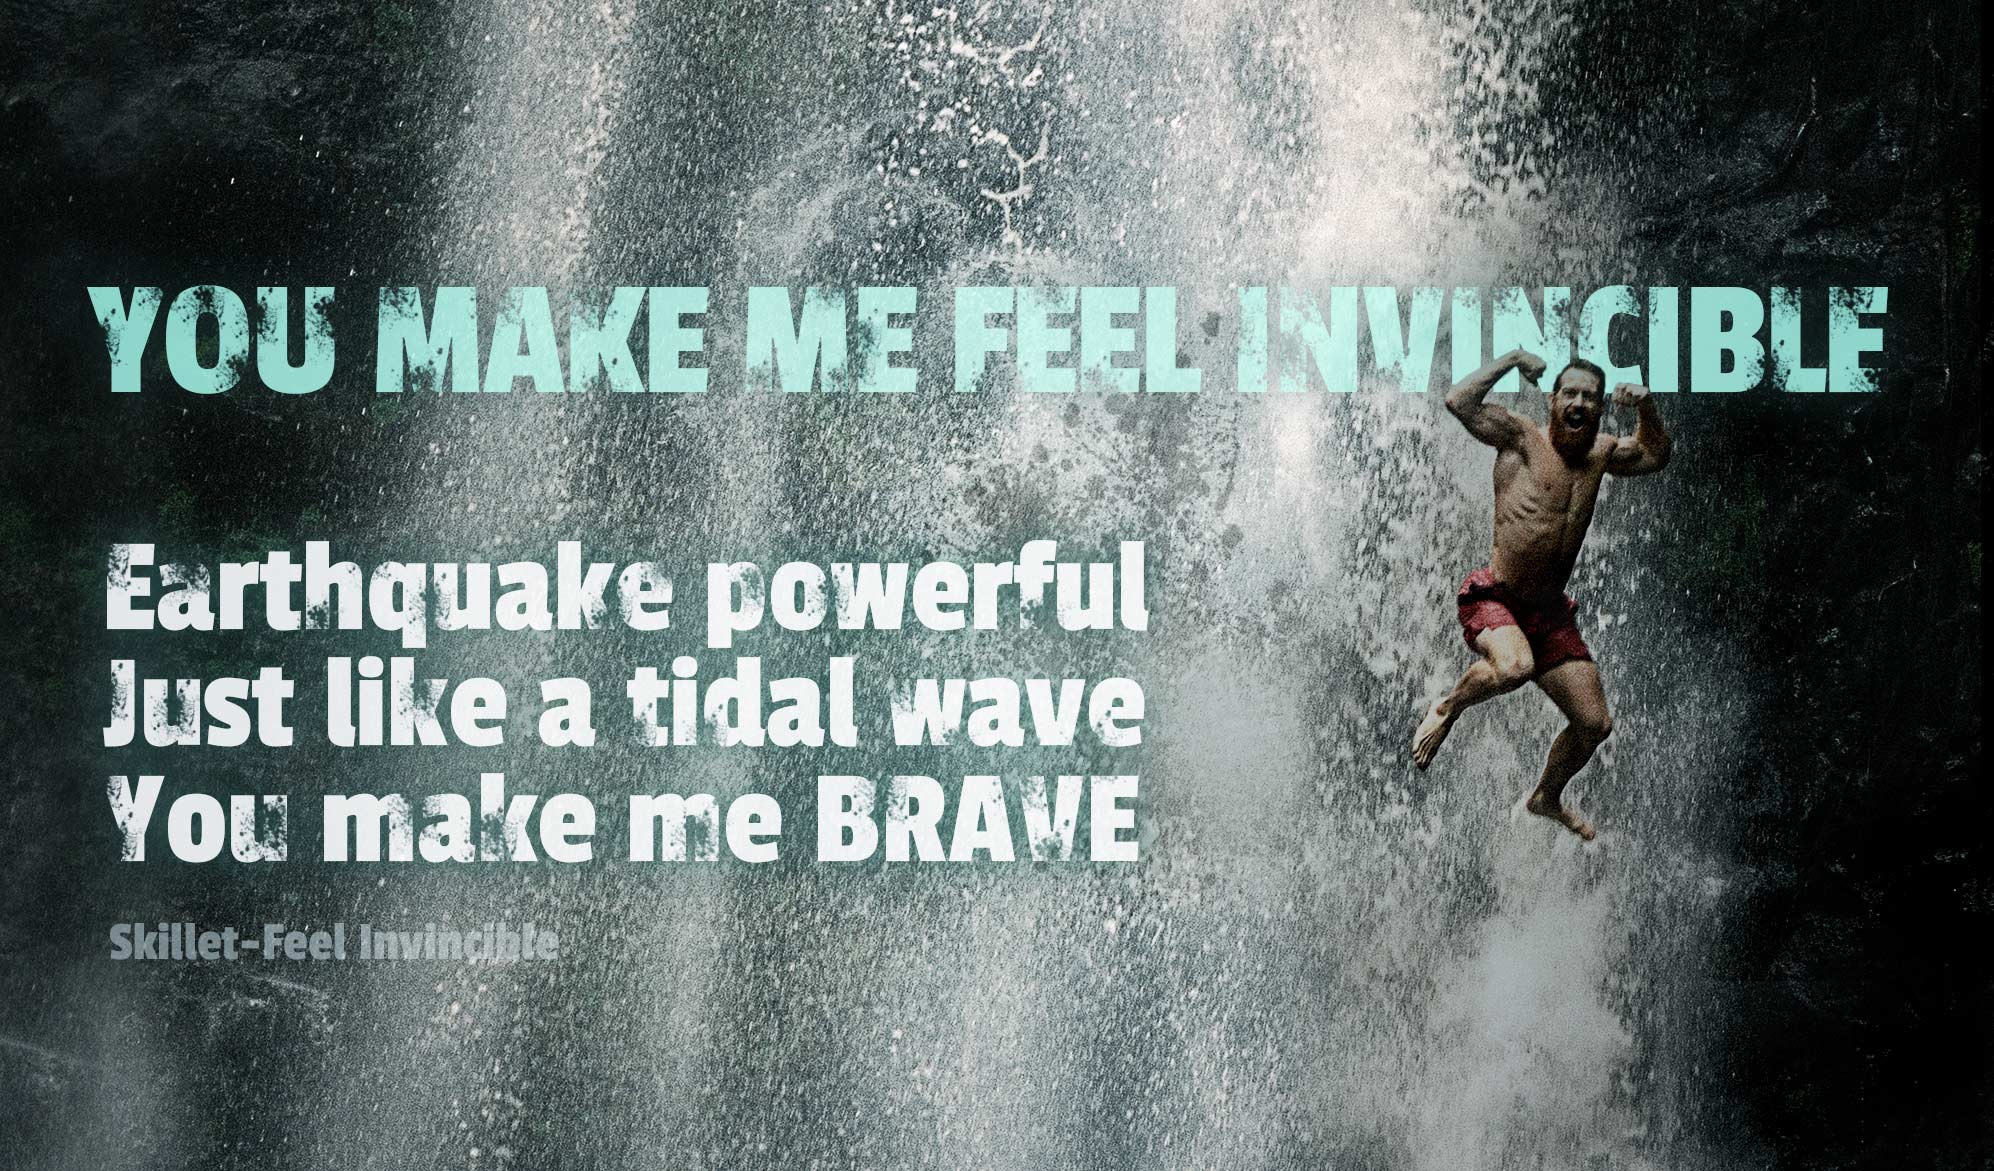 daily inspirational quote image: a man jumping in a waterfall while flexing, feeling invincible